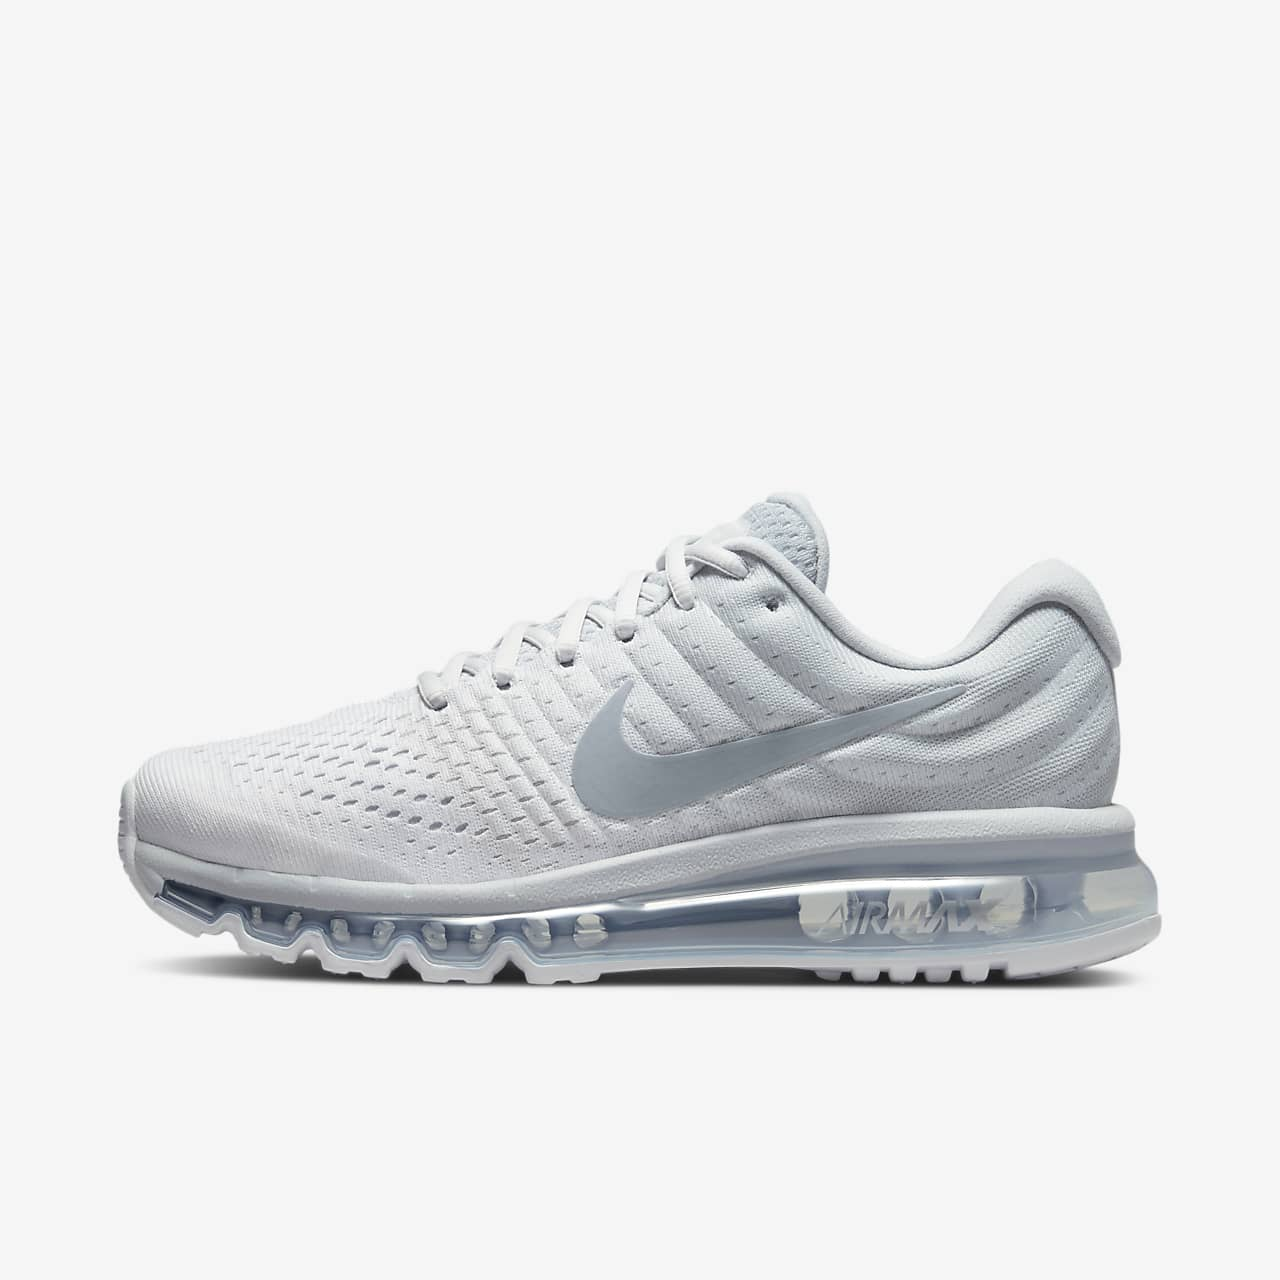 Nike Air Max 2017 Zapatillas de correr